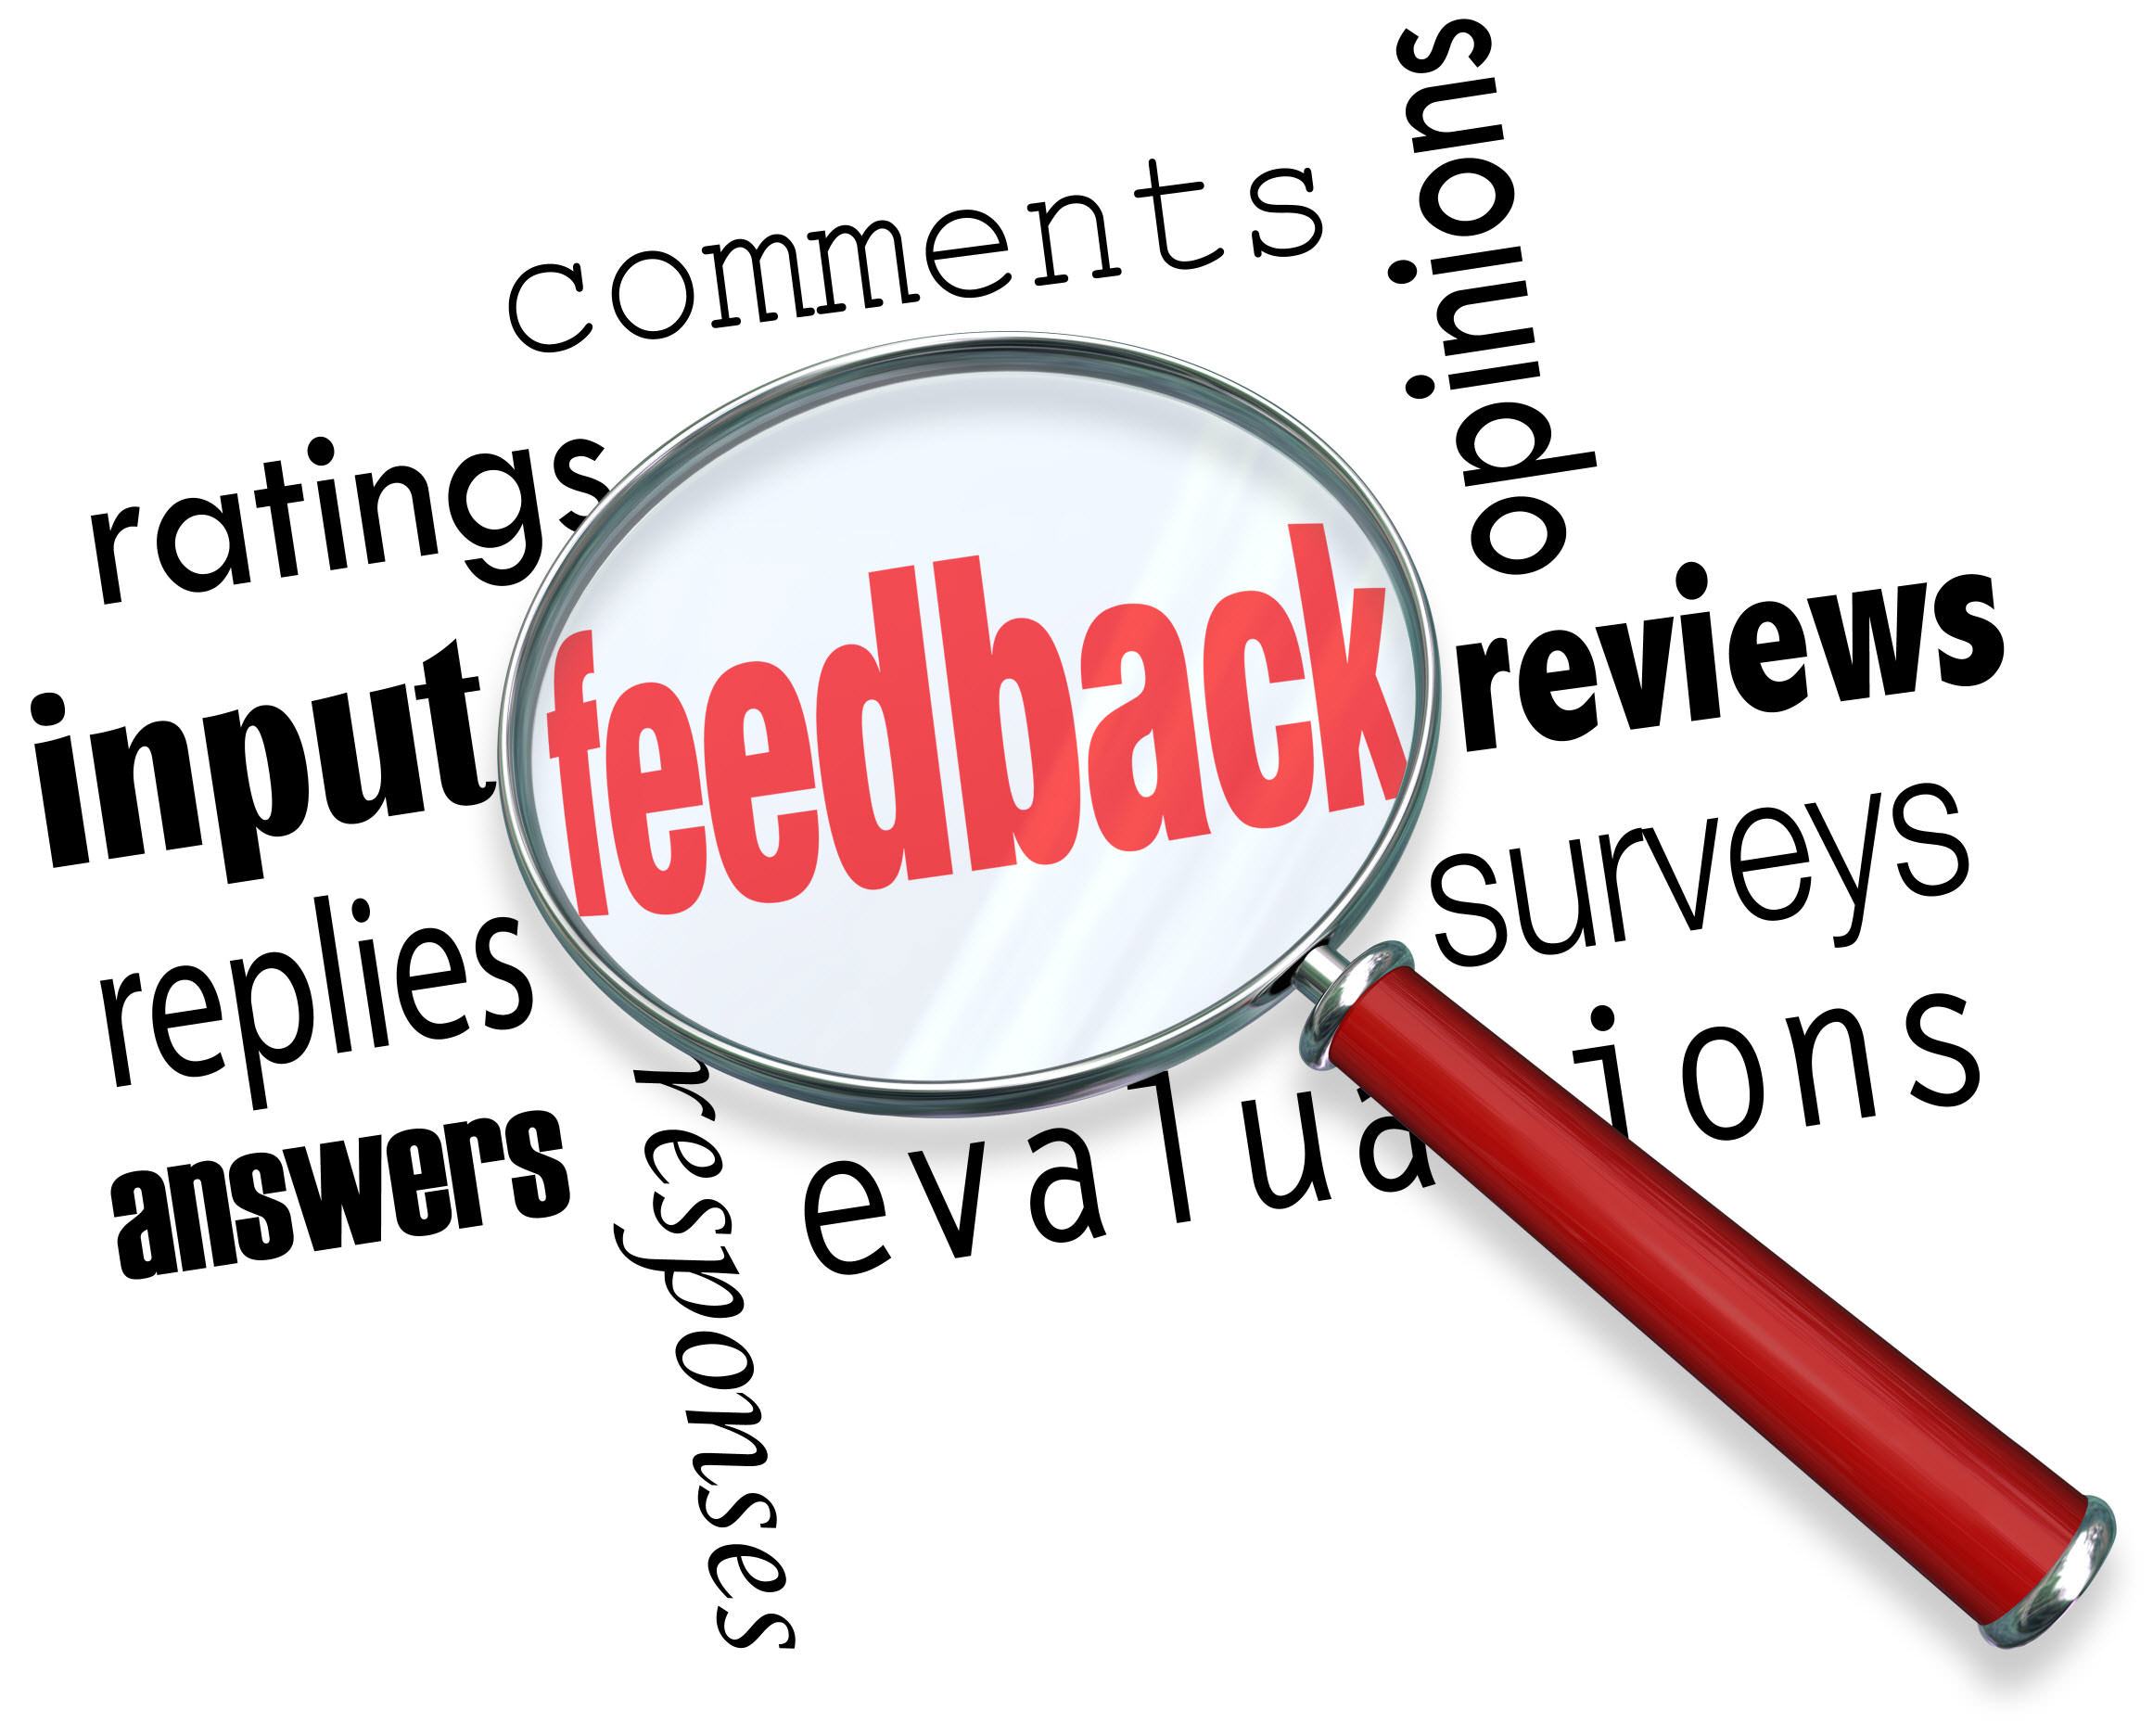 10 Ways Customer Feedback Surveys Increase Conversion Rate